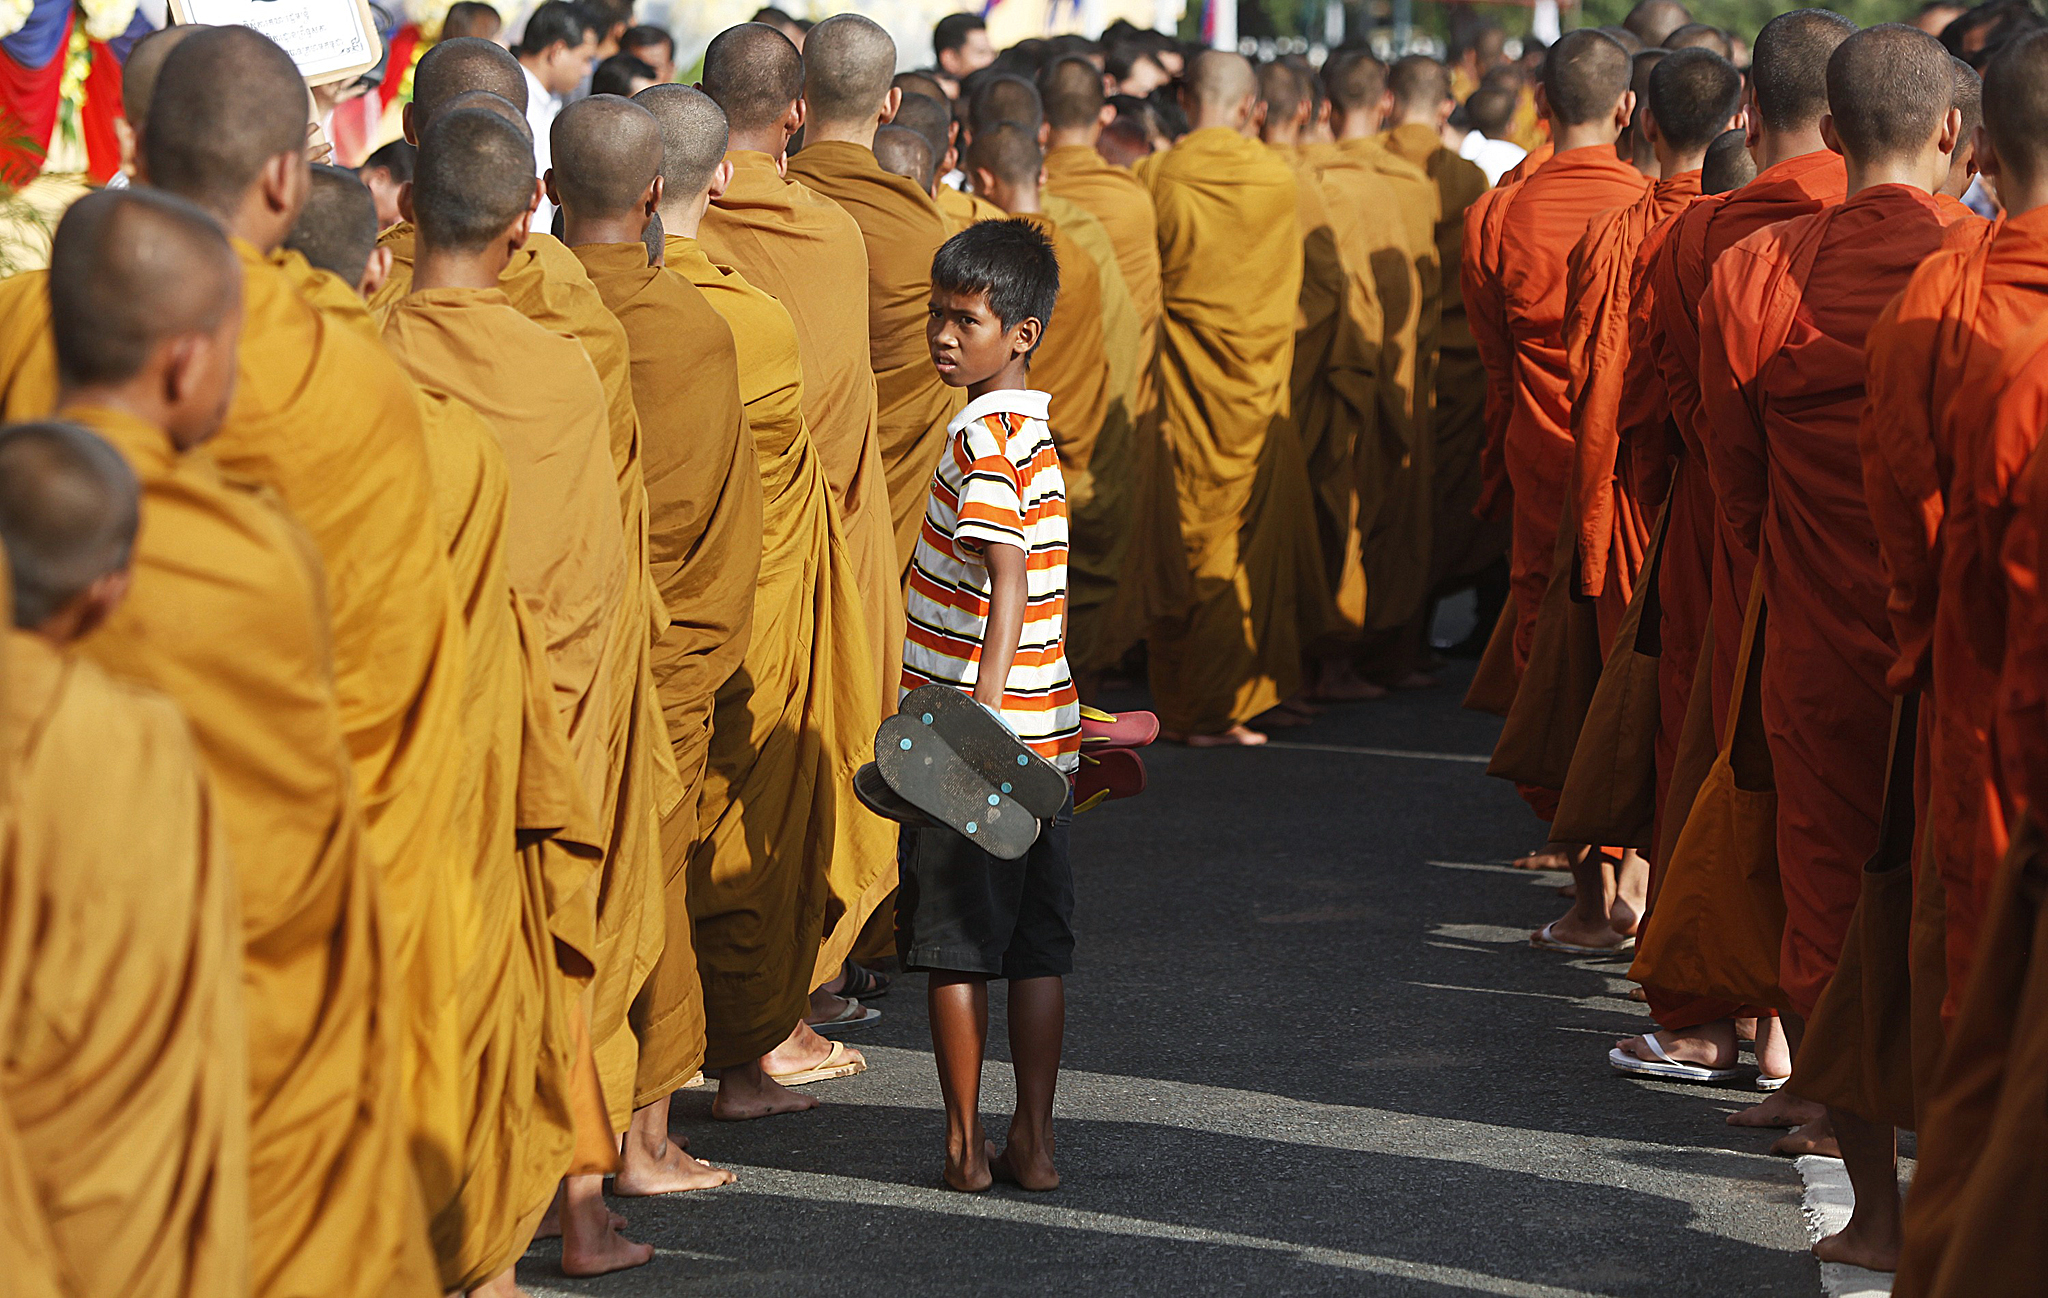 A boy carries shoes as Buddhist monks walk in front of the Royal Palace during a ceremony to mark the 10th anniversary of King Norodom Sihamoni coronation, in Phnom Penh...A boy carries shoes as Buddhist monks walk in front of the Royal Palace during a ceremony to mark the 10th anniversary of King Norodom Sihamoni coronation, in Phnom Penh October 28, 2014. Cambodians mark the 10th anniversary of Sihamoni's coronation from October 28-29. REUTERS/Samrang Pring (CAMBODIA - Tags: RELIGION ROYALS ANNIVERSARY SOCIETY)